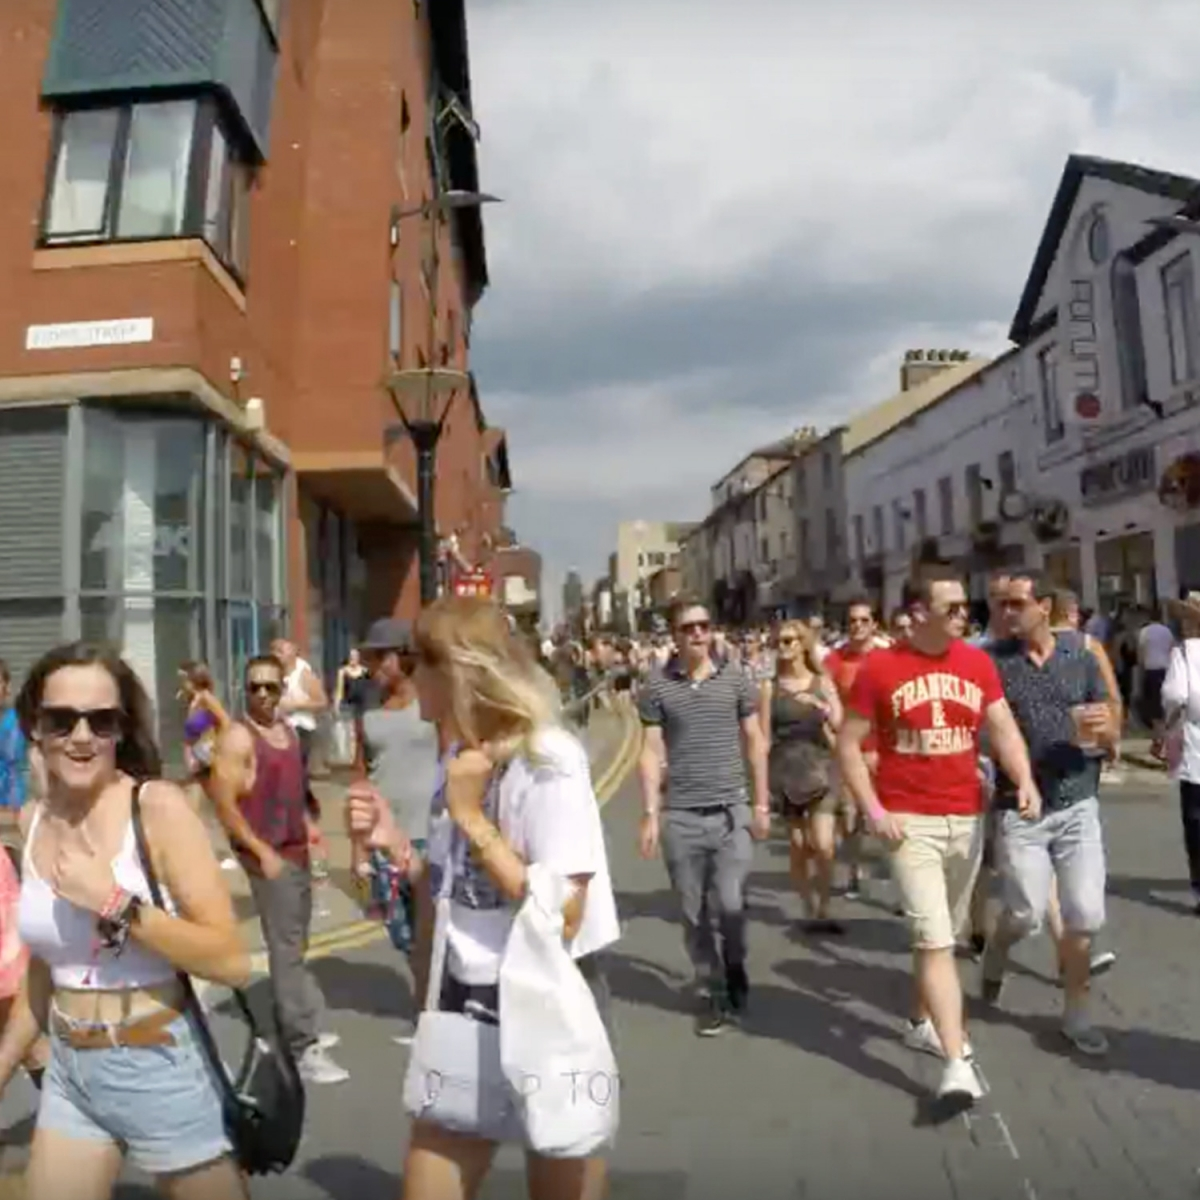 Revellers on the streets during Tramlines urban festival